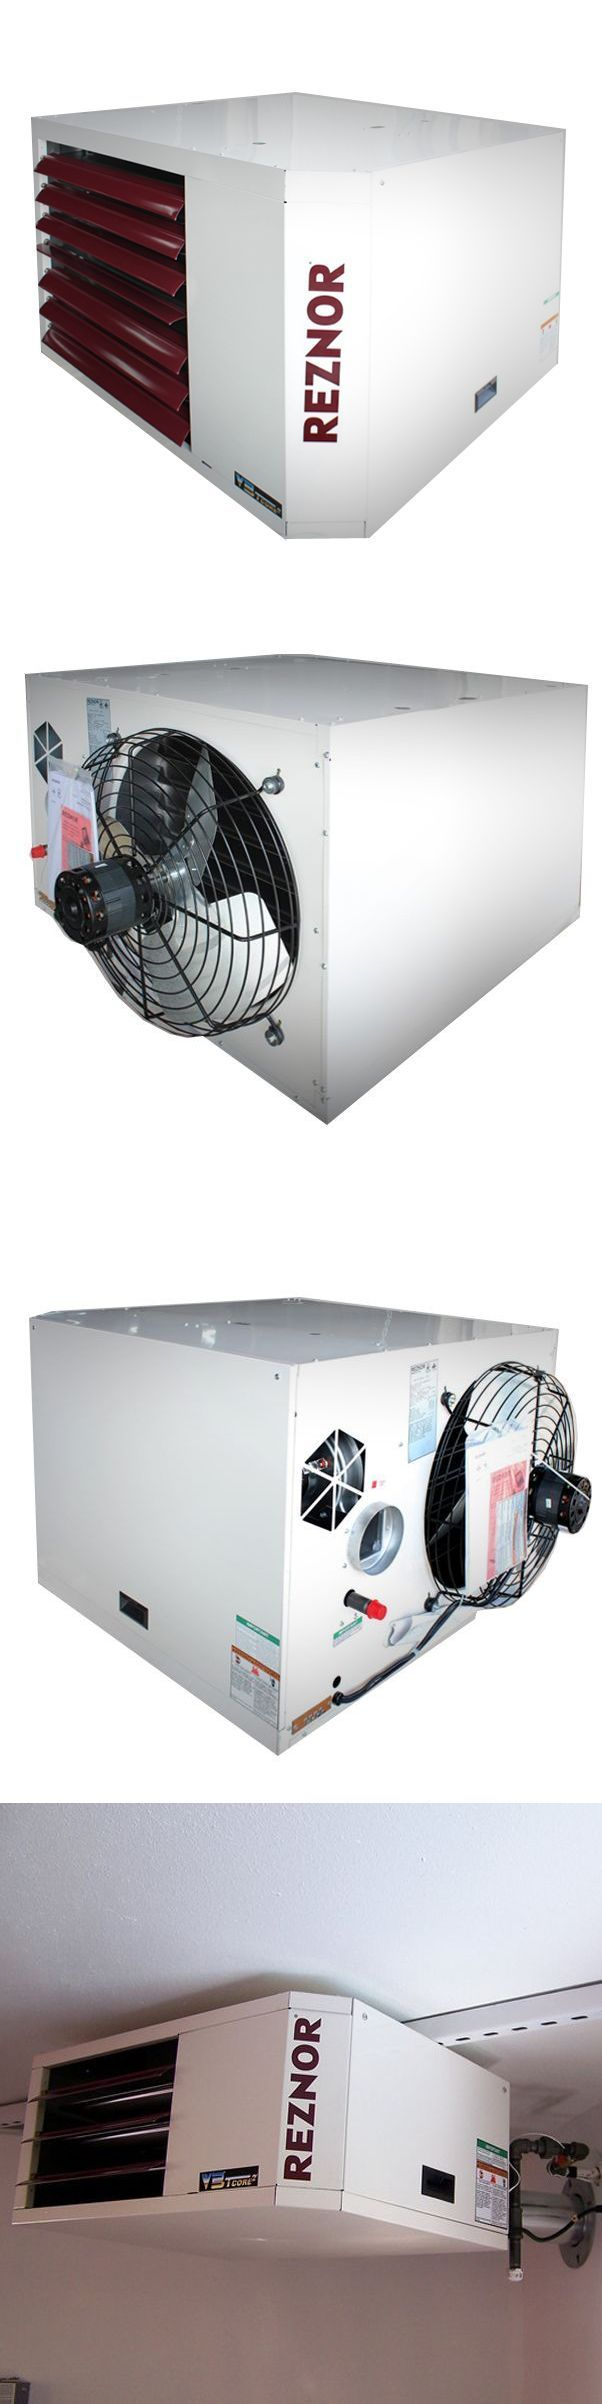 Furnaces and Heating Systems 41987: Reznor Udap60 60.000Btu Garage Heater 83% Efficient -> BUY IT NOW ONLY: $729 on eBay!